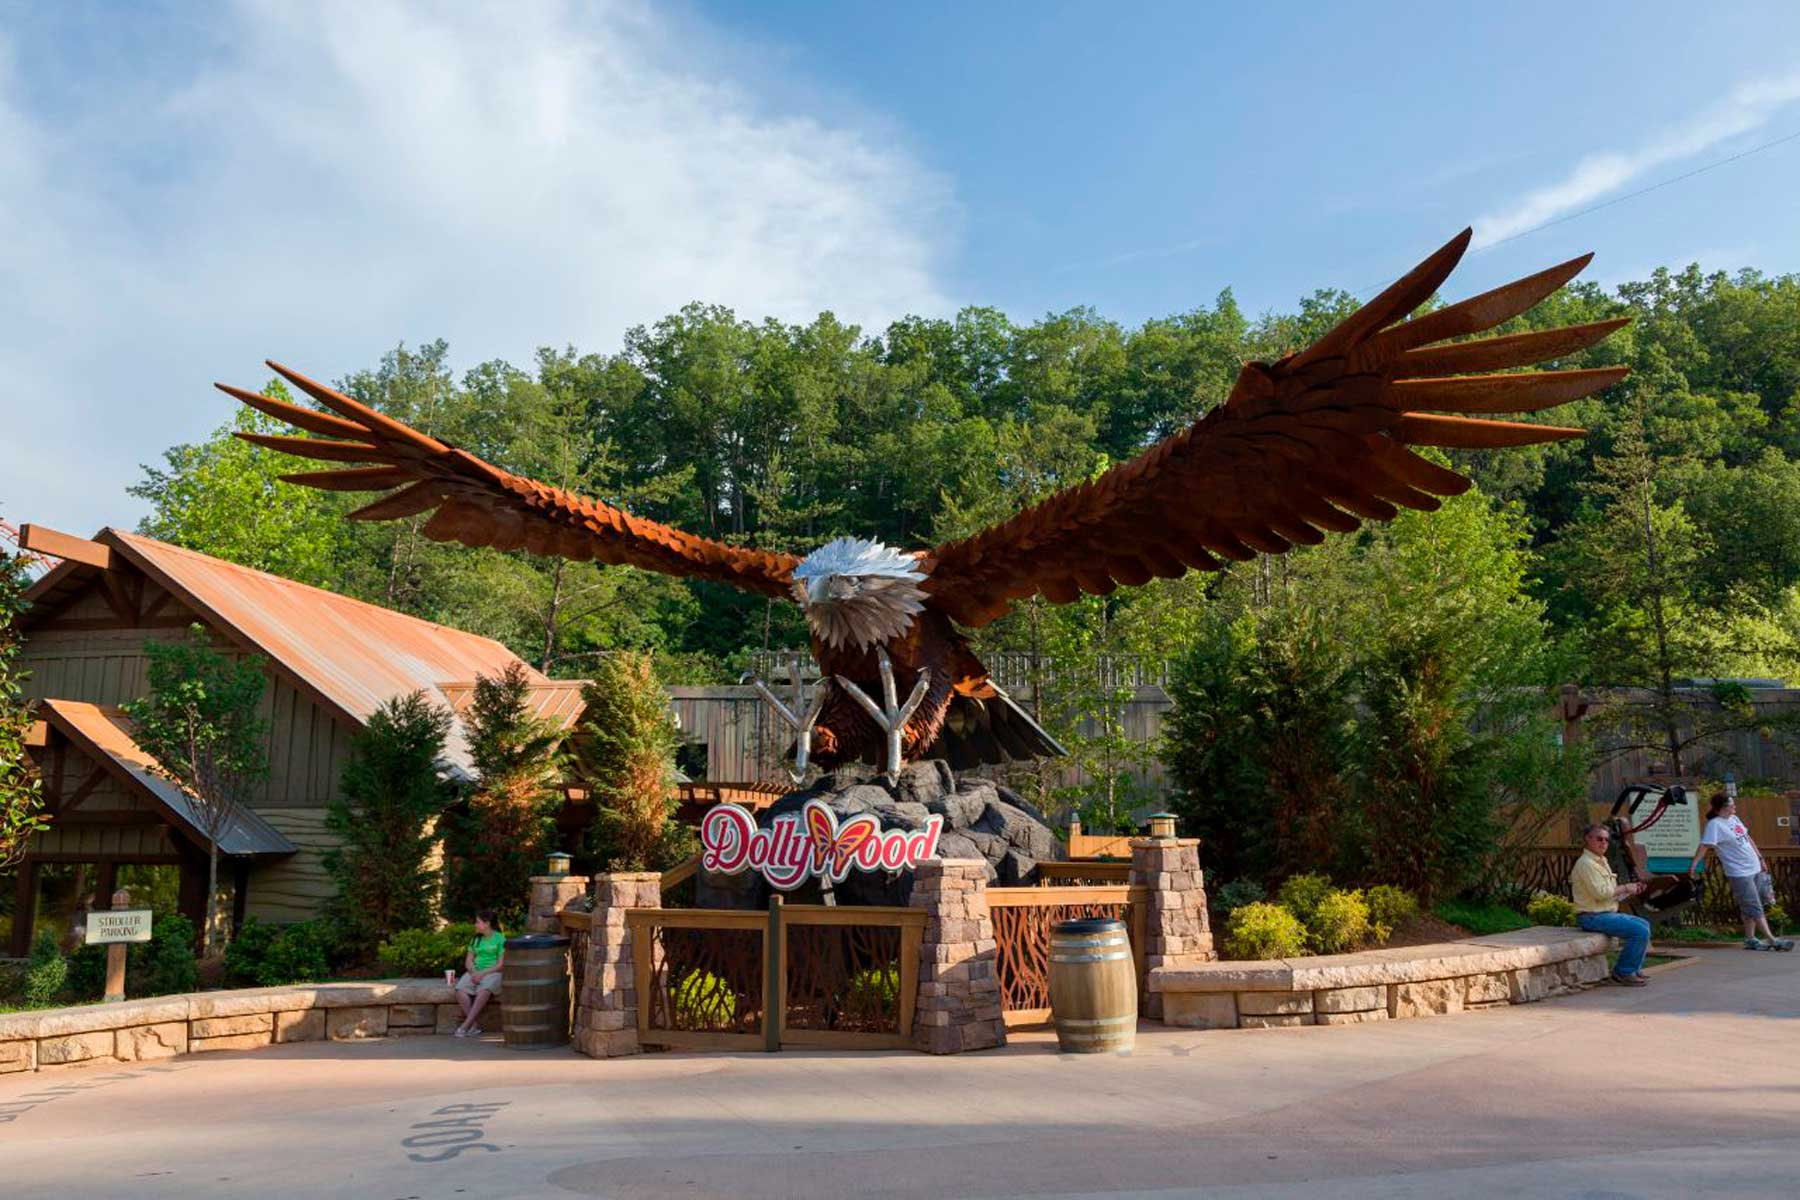 Dollywood's eagle statue